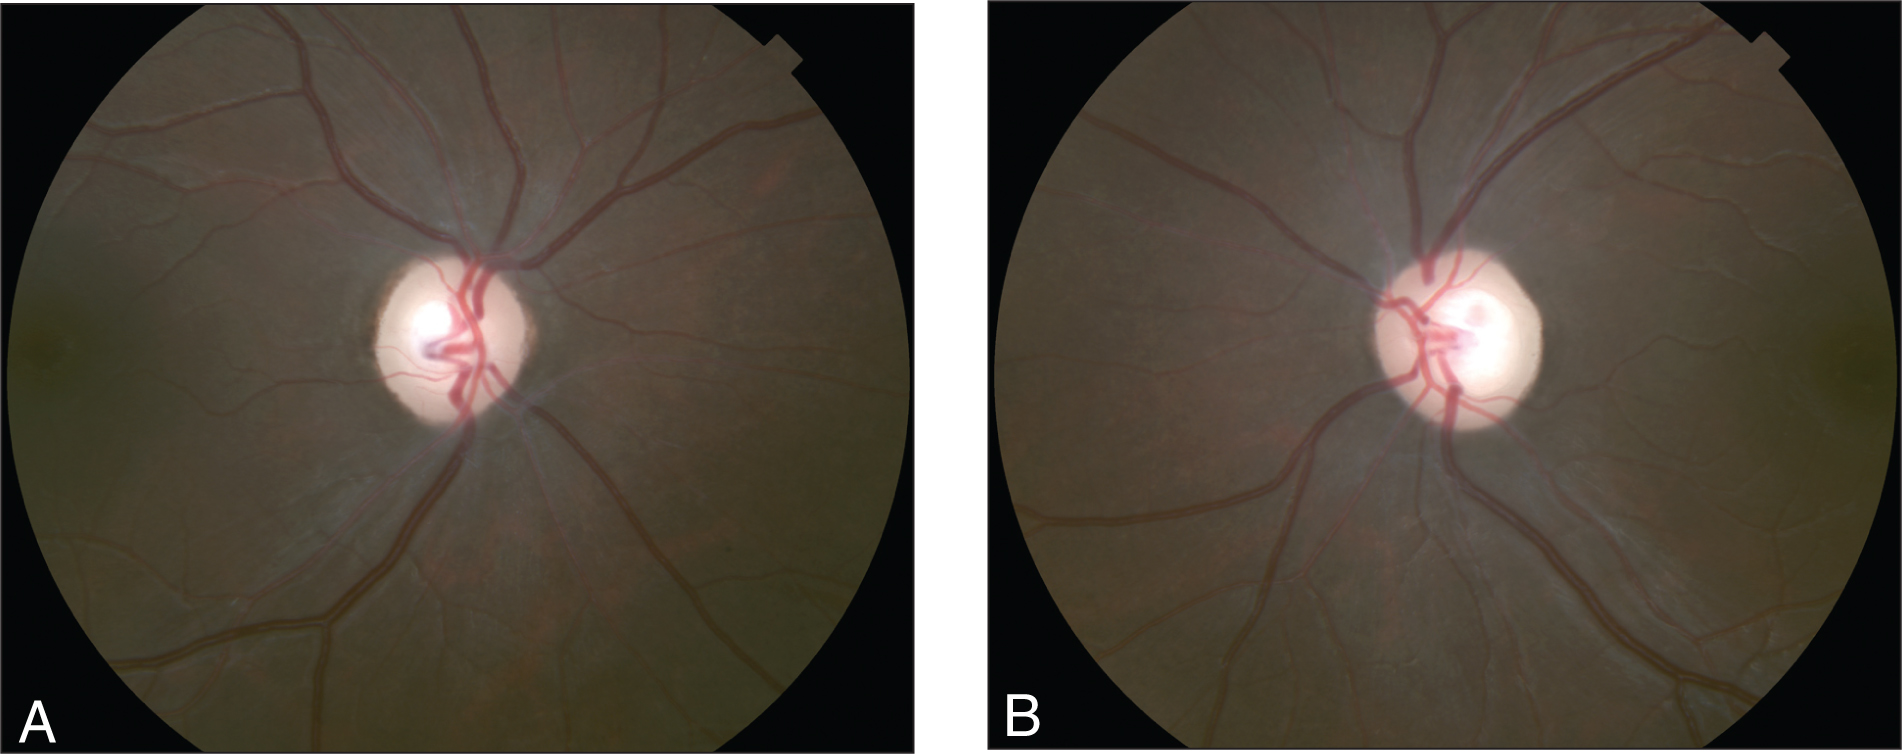 Color Optic Nerve Photographs Taken After 12 Weeks of Immunosuppressive Therapy. Visual Acuity at This Visit Was (A) No Light Perception in the Right Eye and (B) 20/400 in the Left Eye.